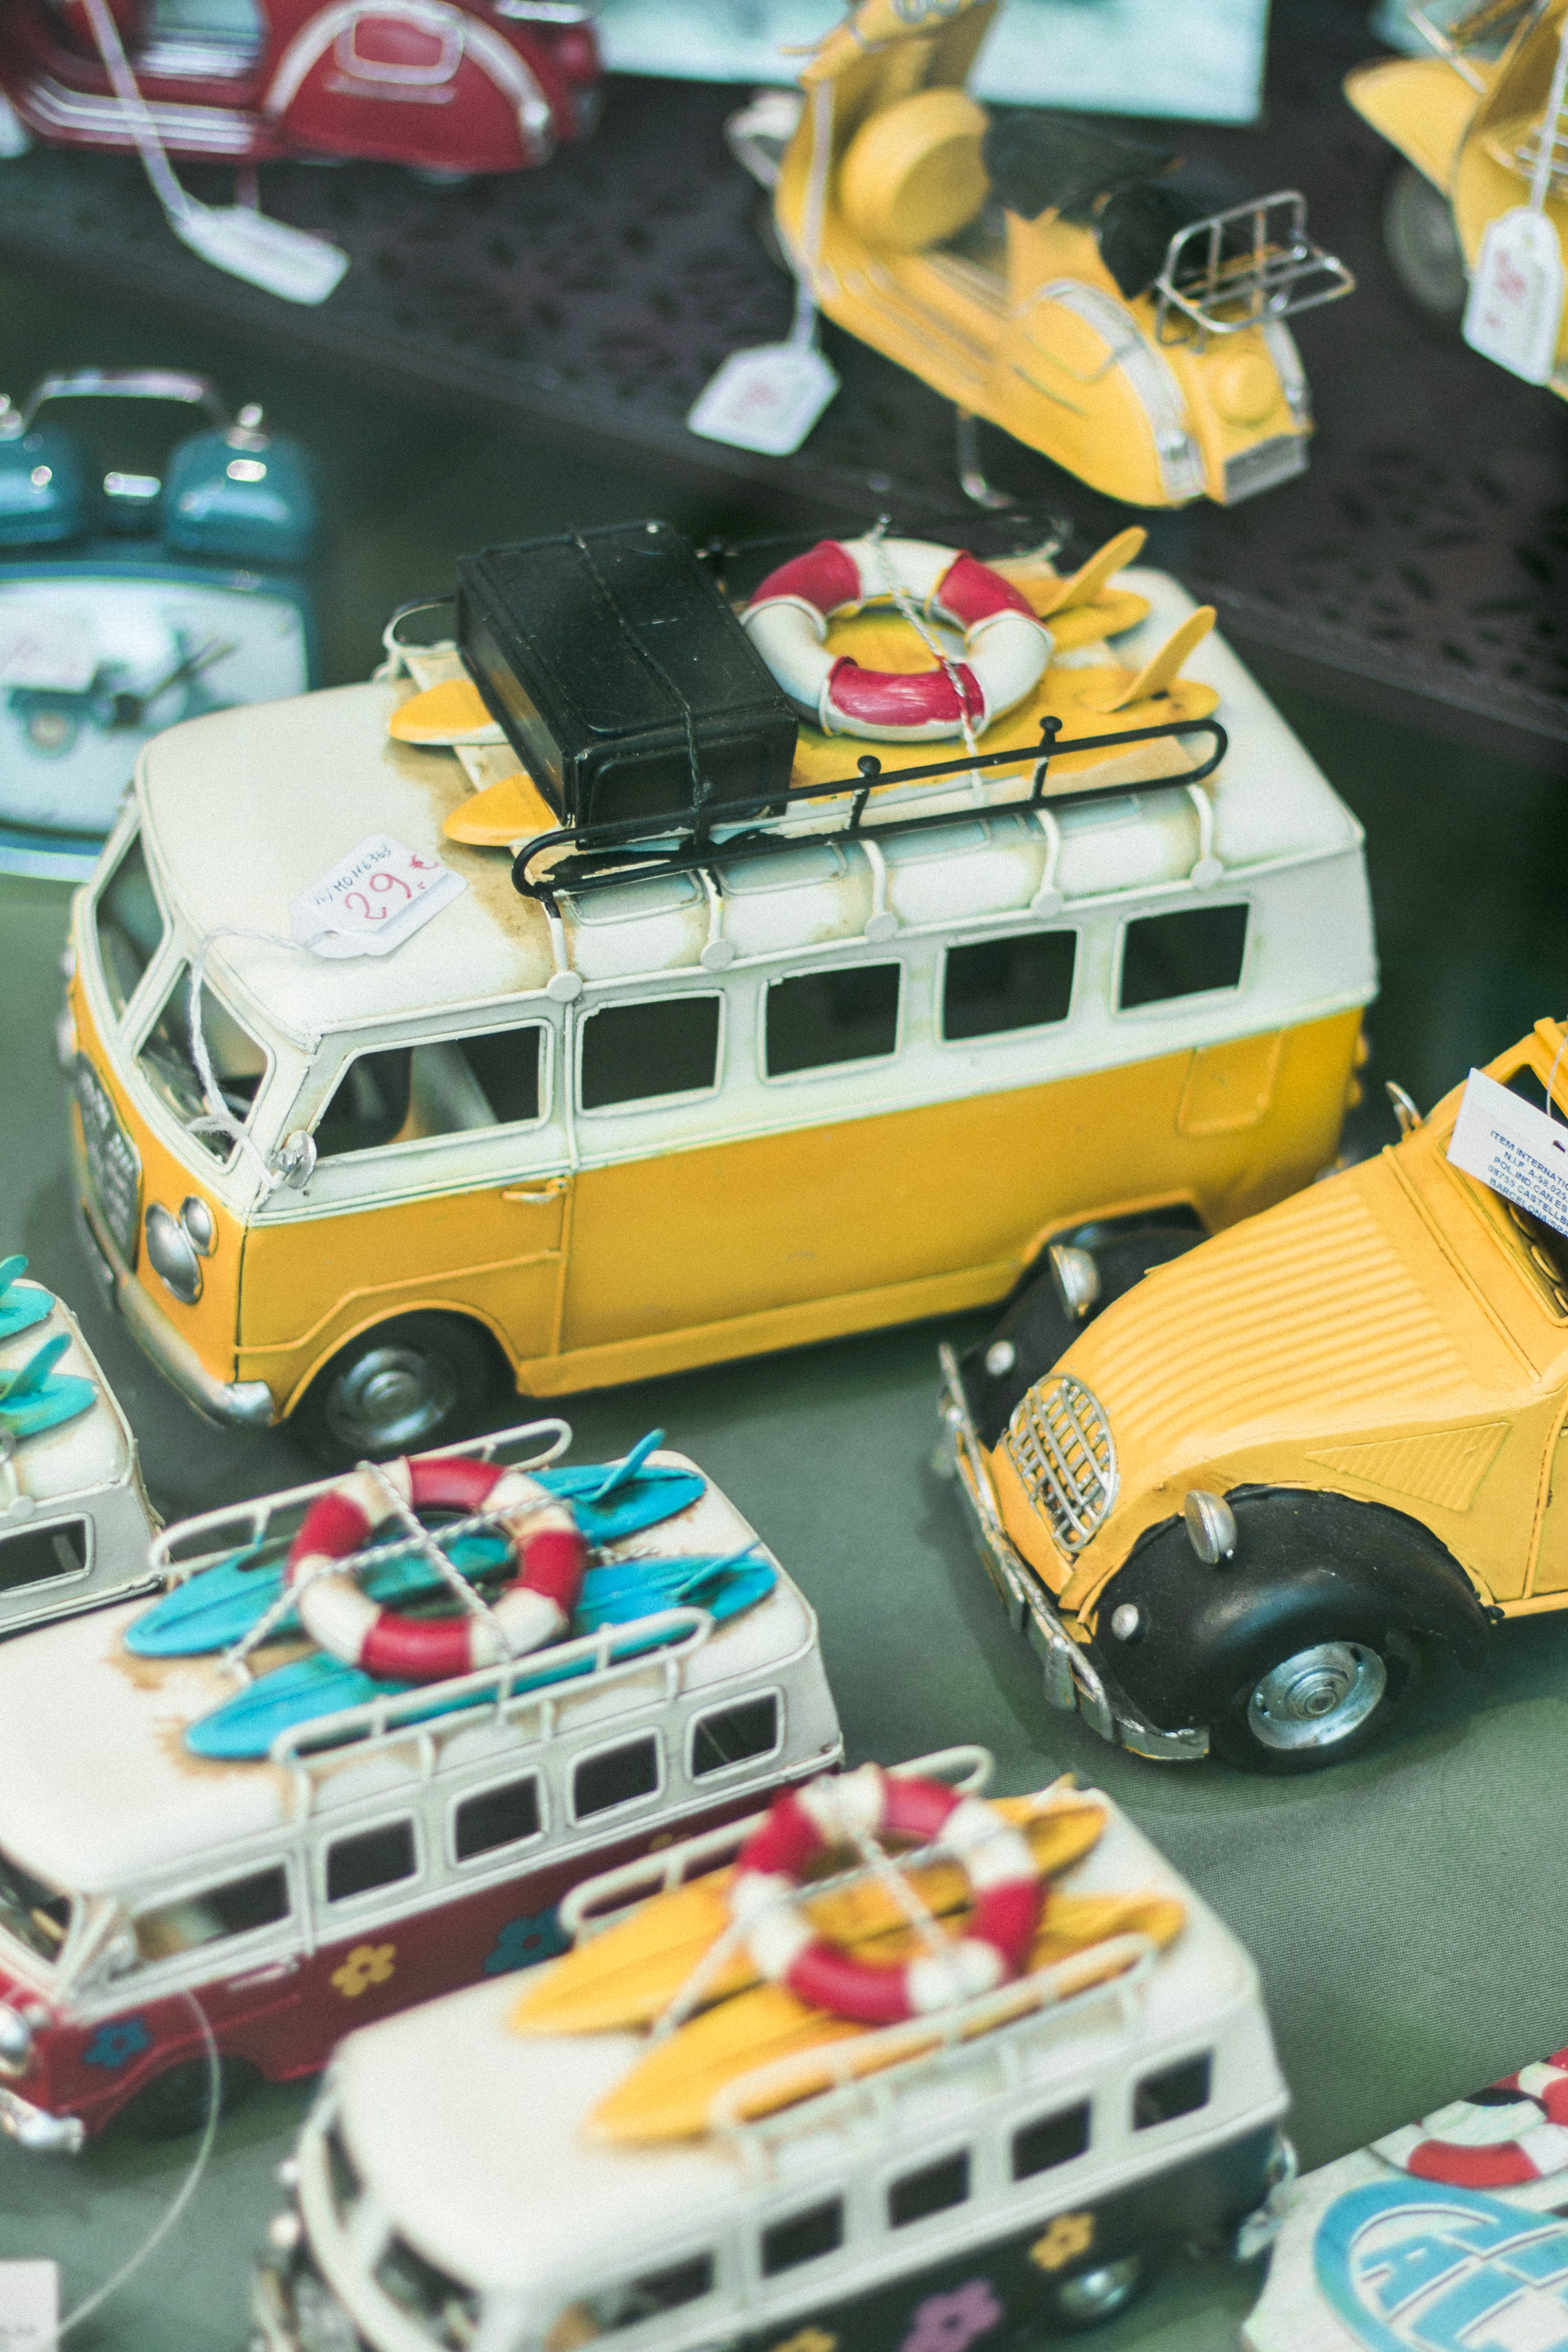 Closeup Photography of Several Toy Vans